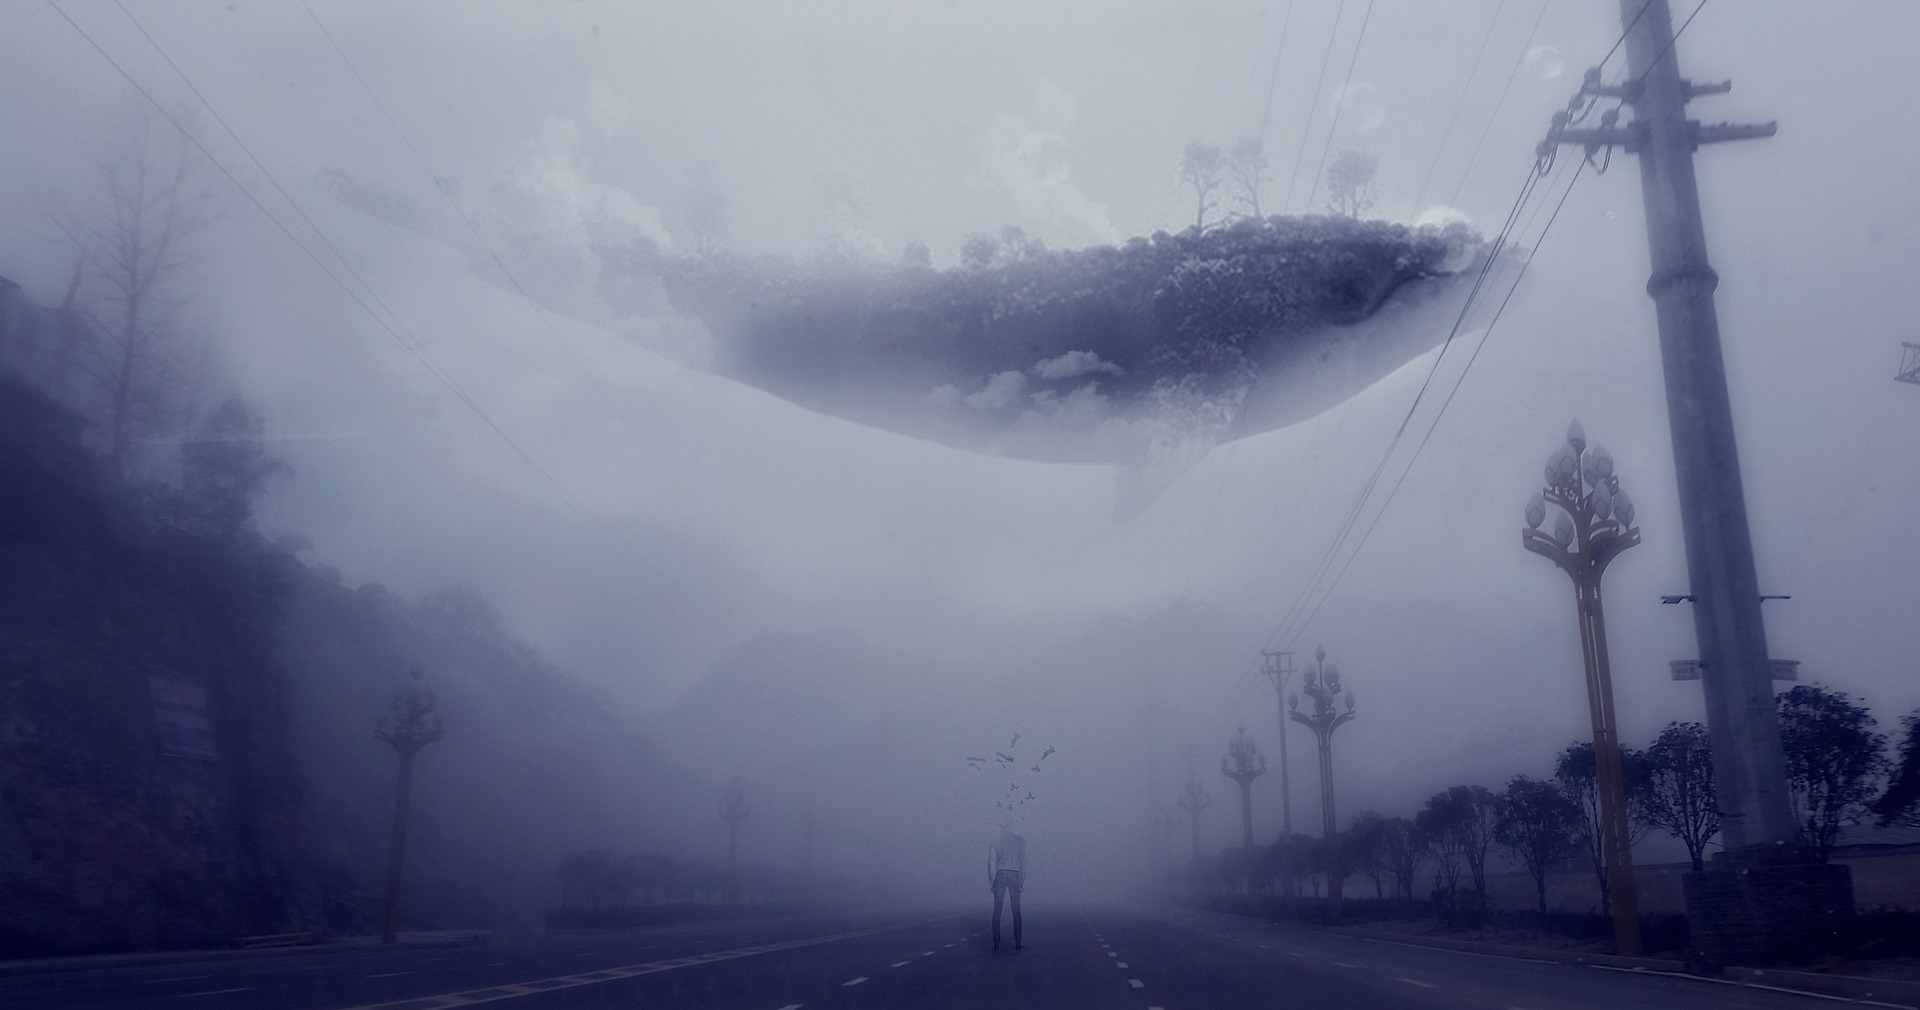 Dreamlike image of whale swimming above a street